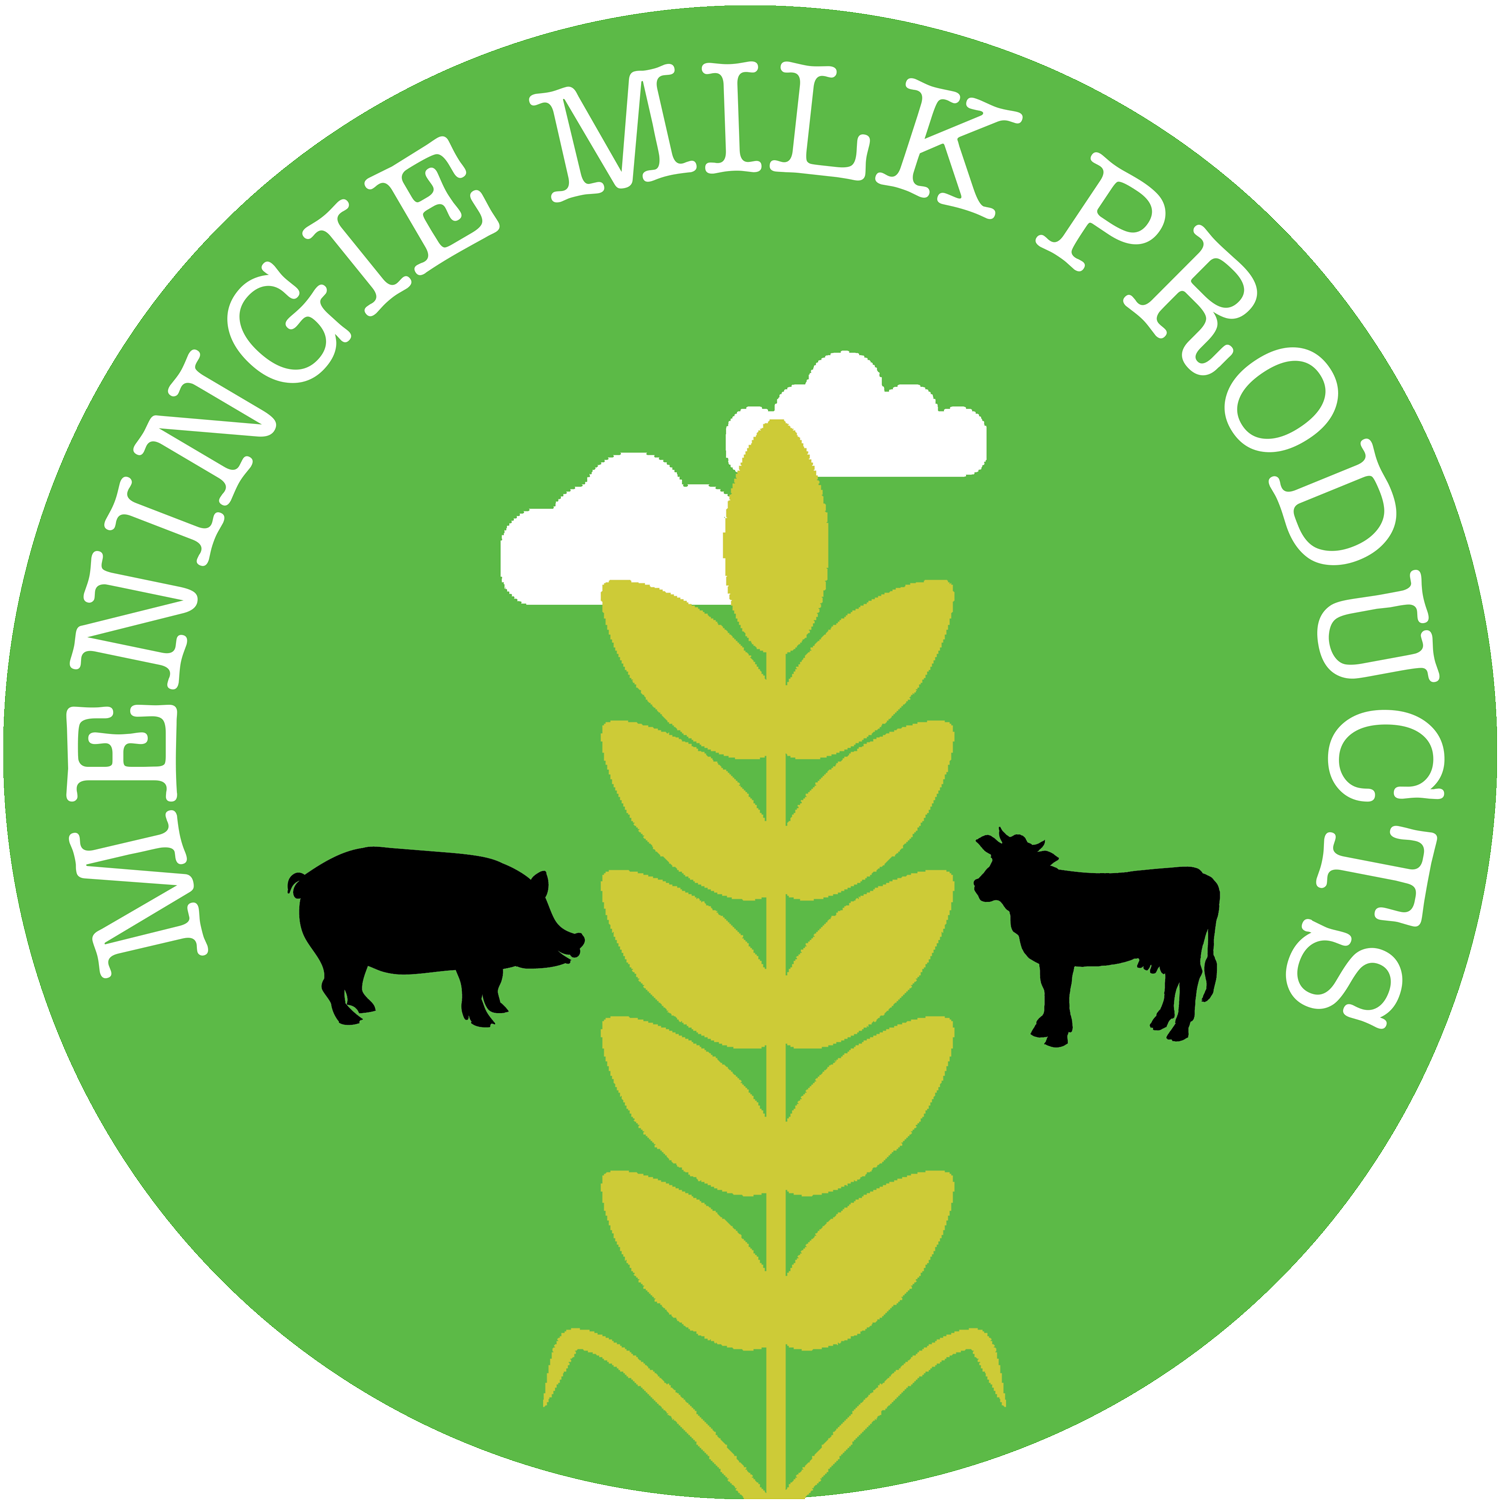 Meningie Milk Products